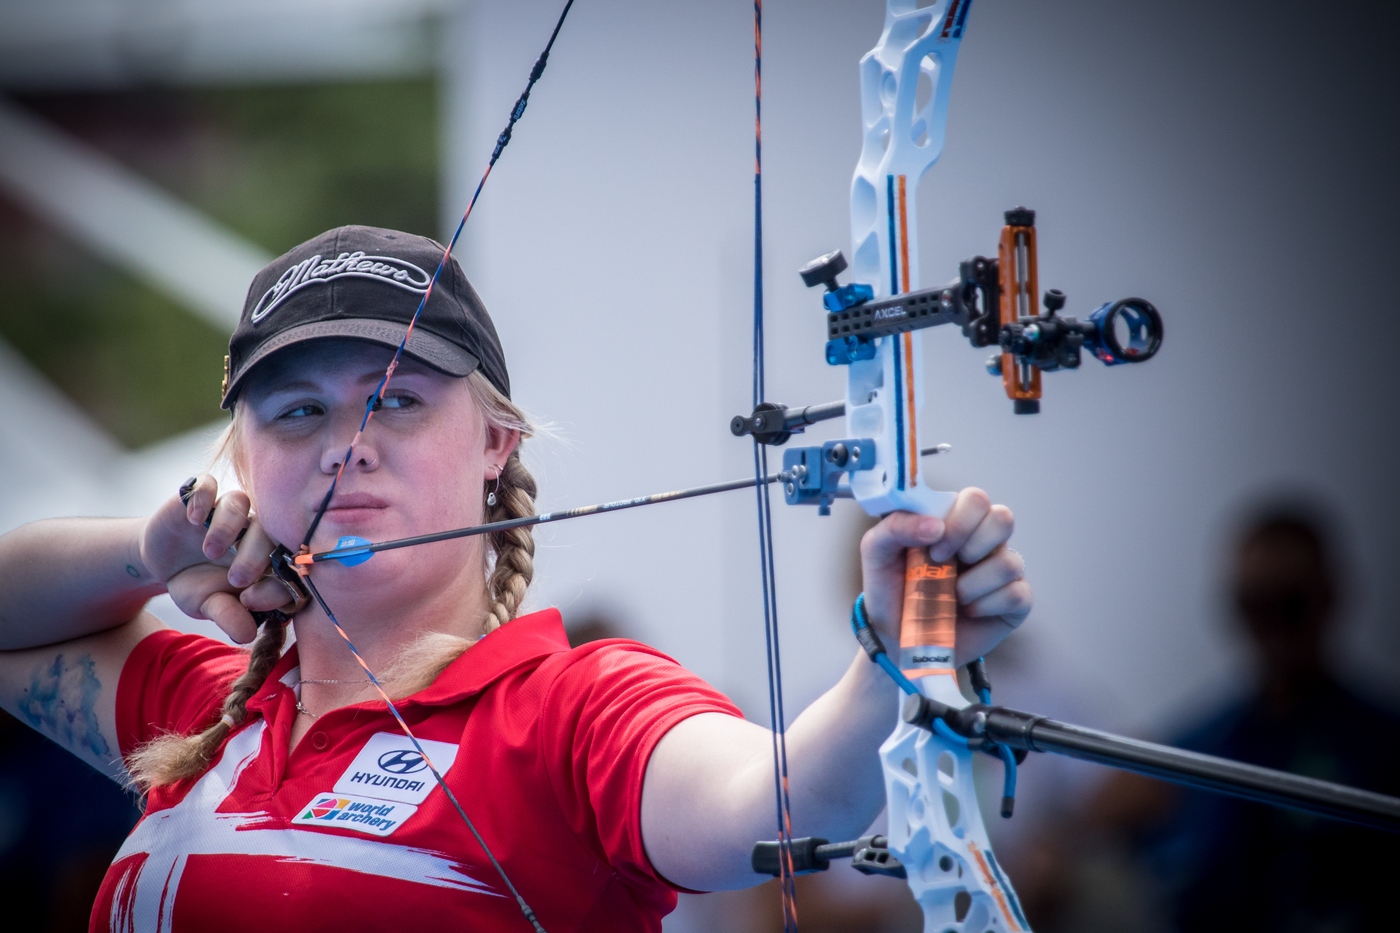 Longines Archery Event: Stephan Hansen and Sarah Sonnichsen claim the Longines Prize for Precision at the Archery World Cup Final in Rome 3